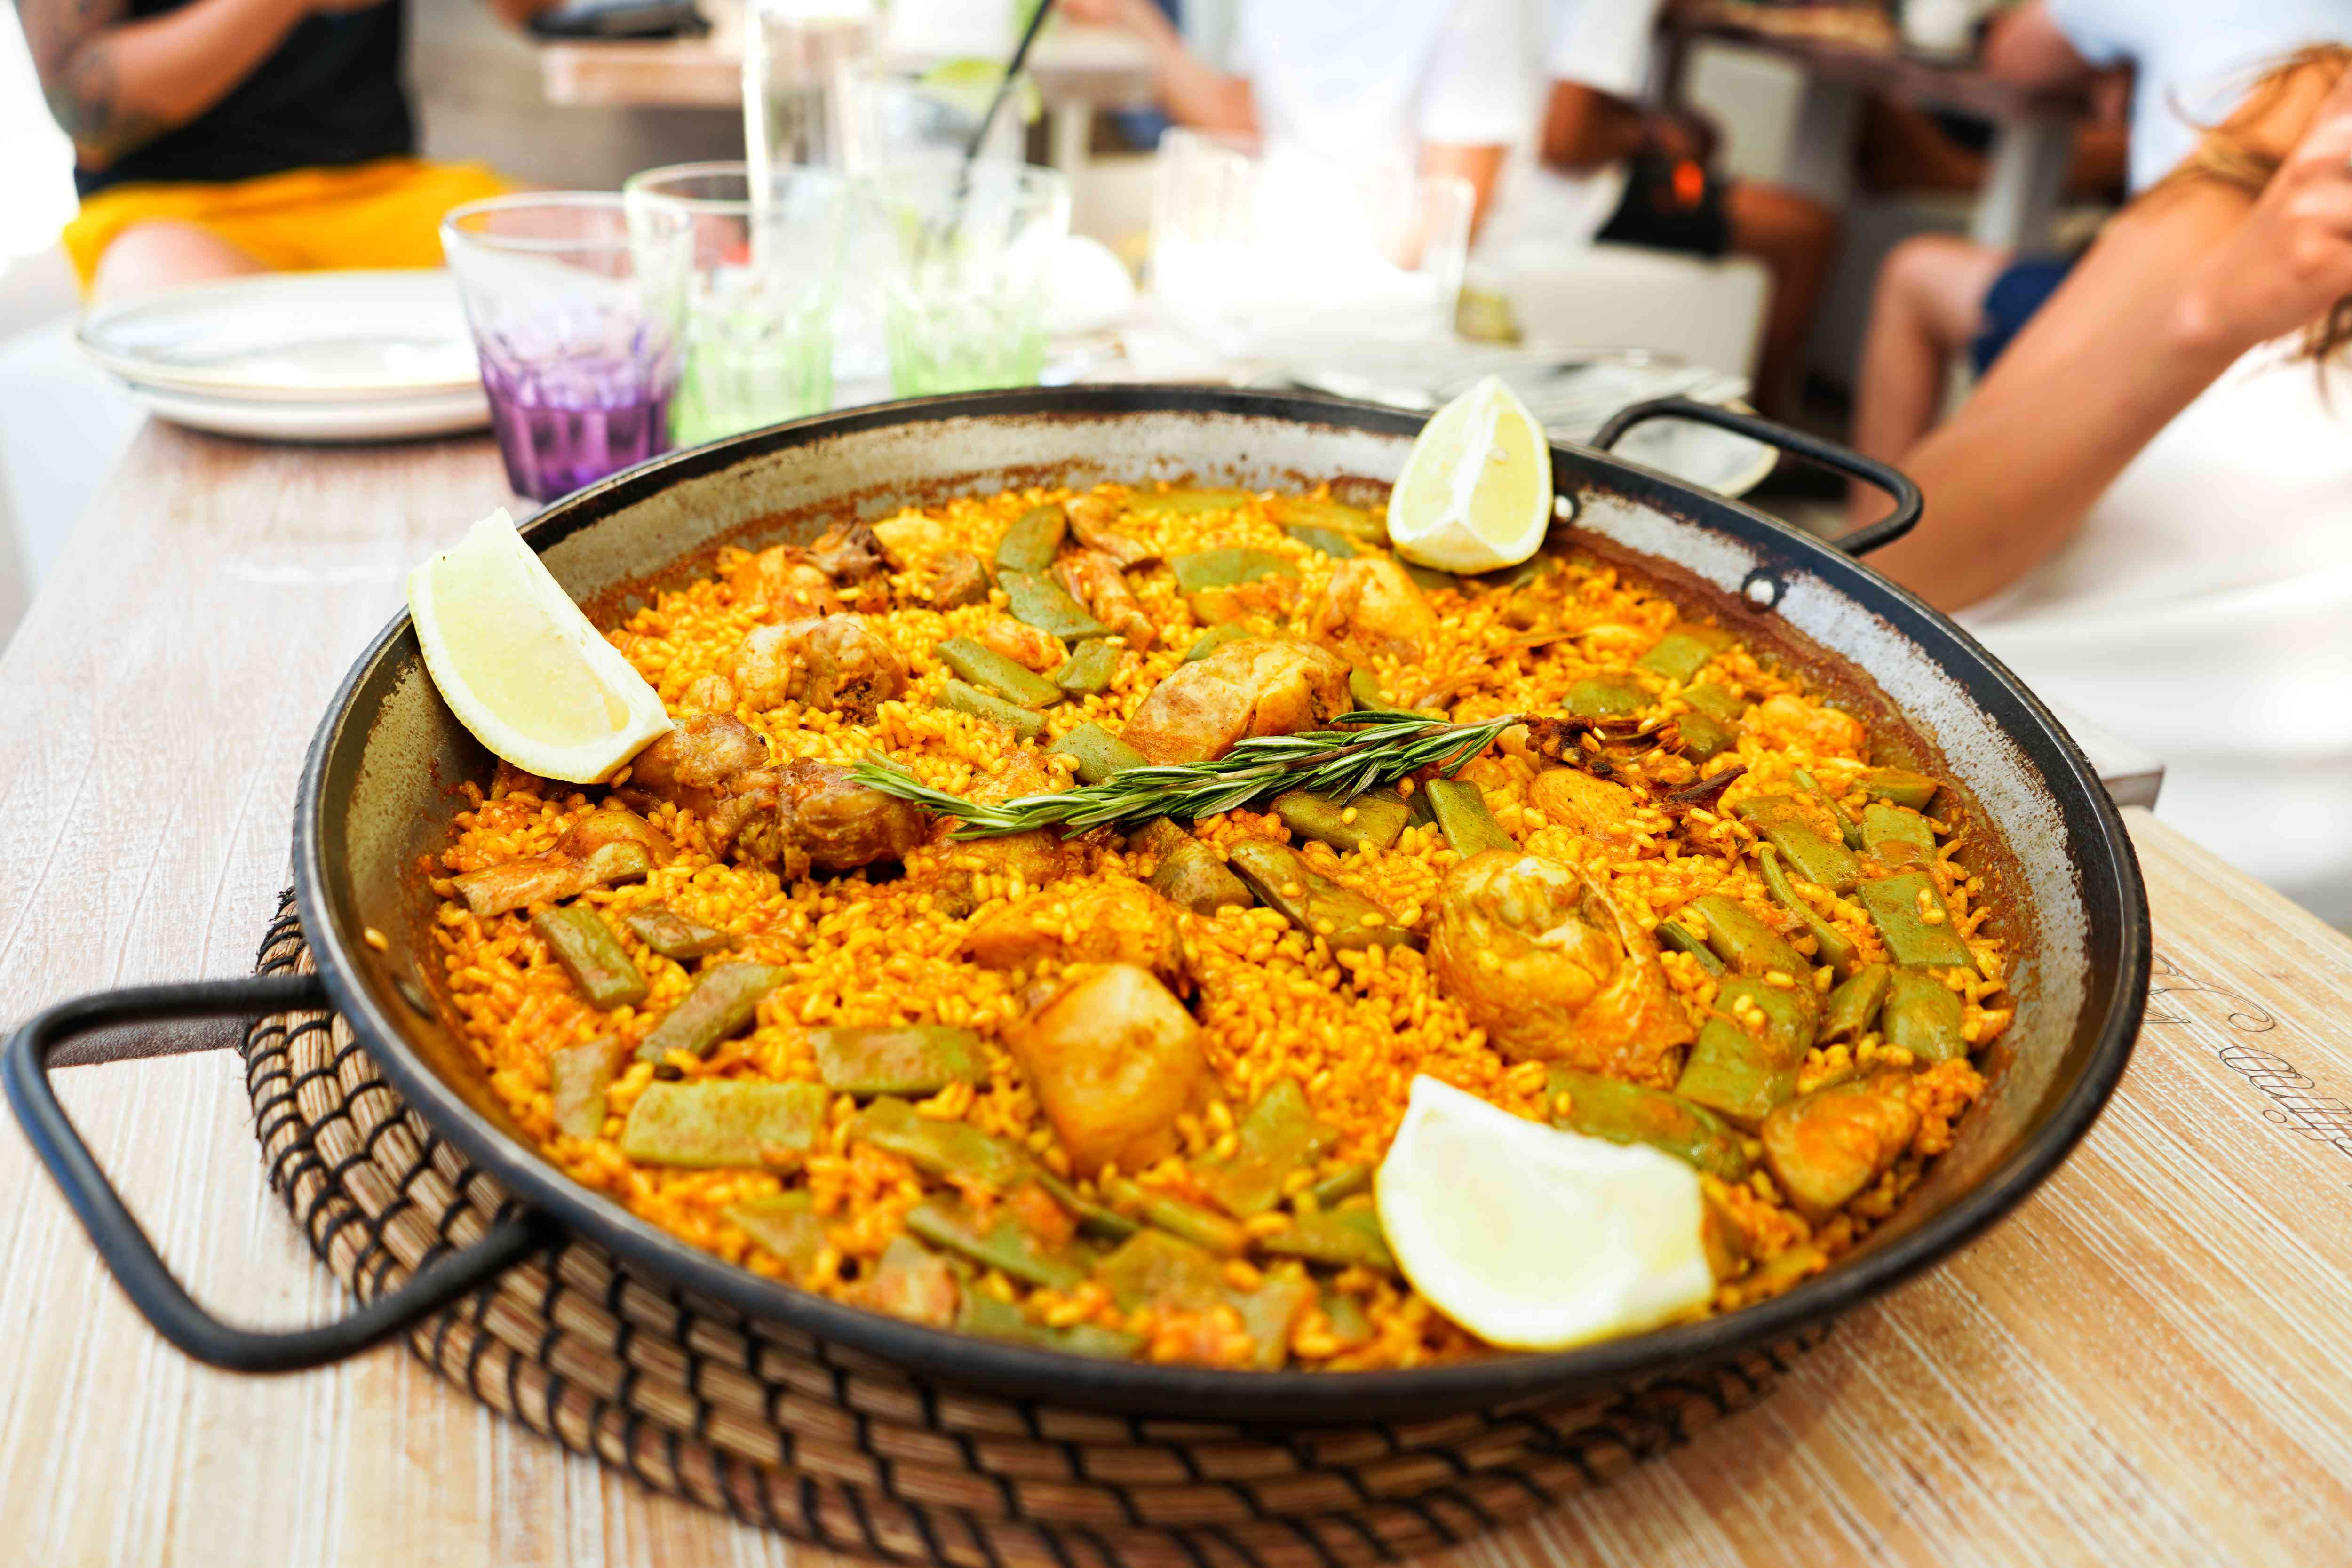 A full plate of Paella